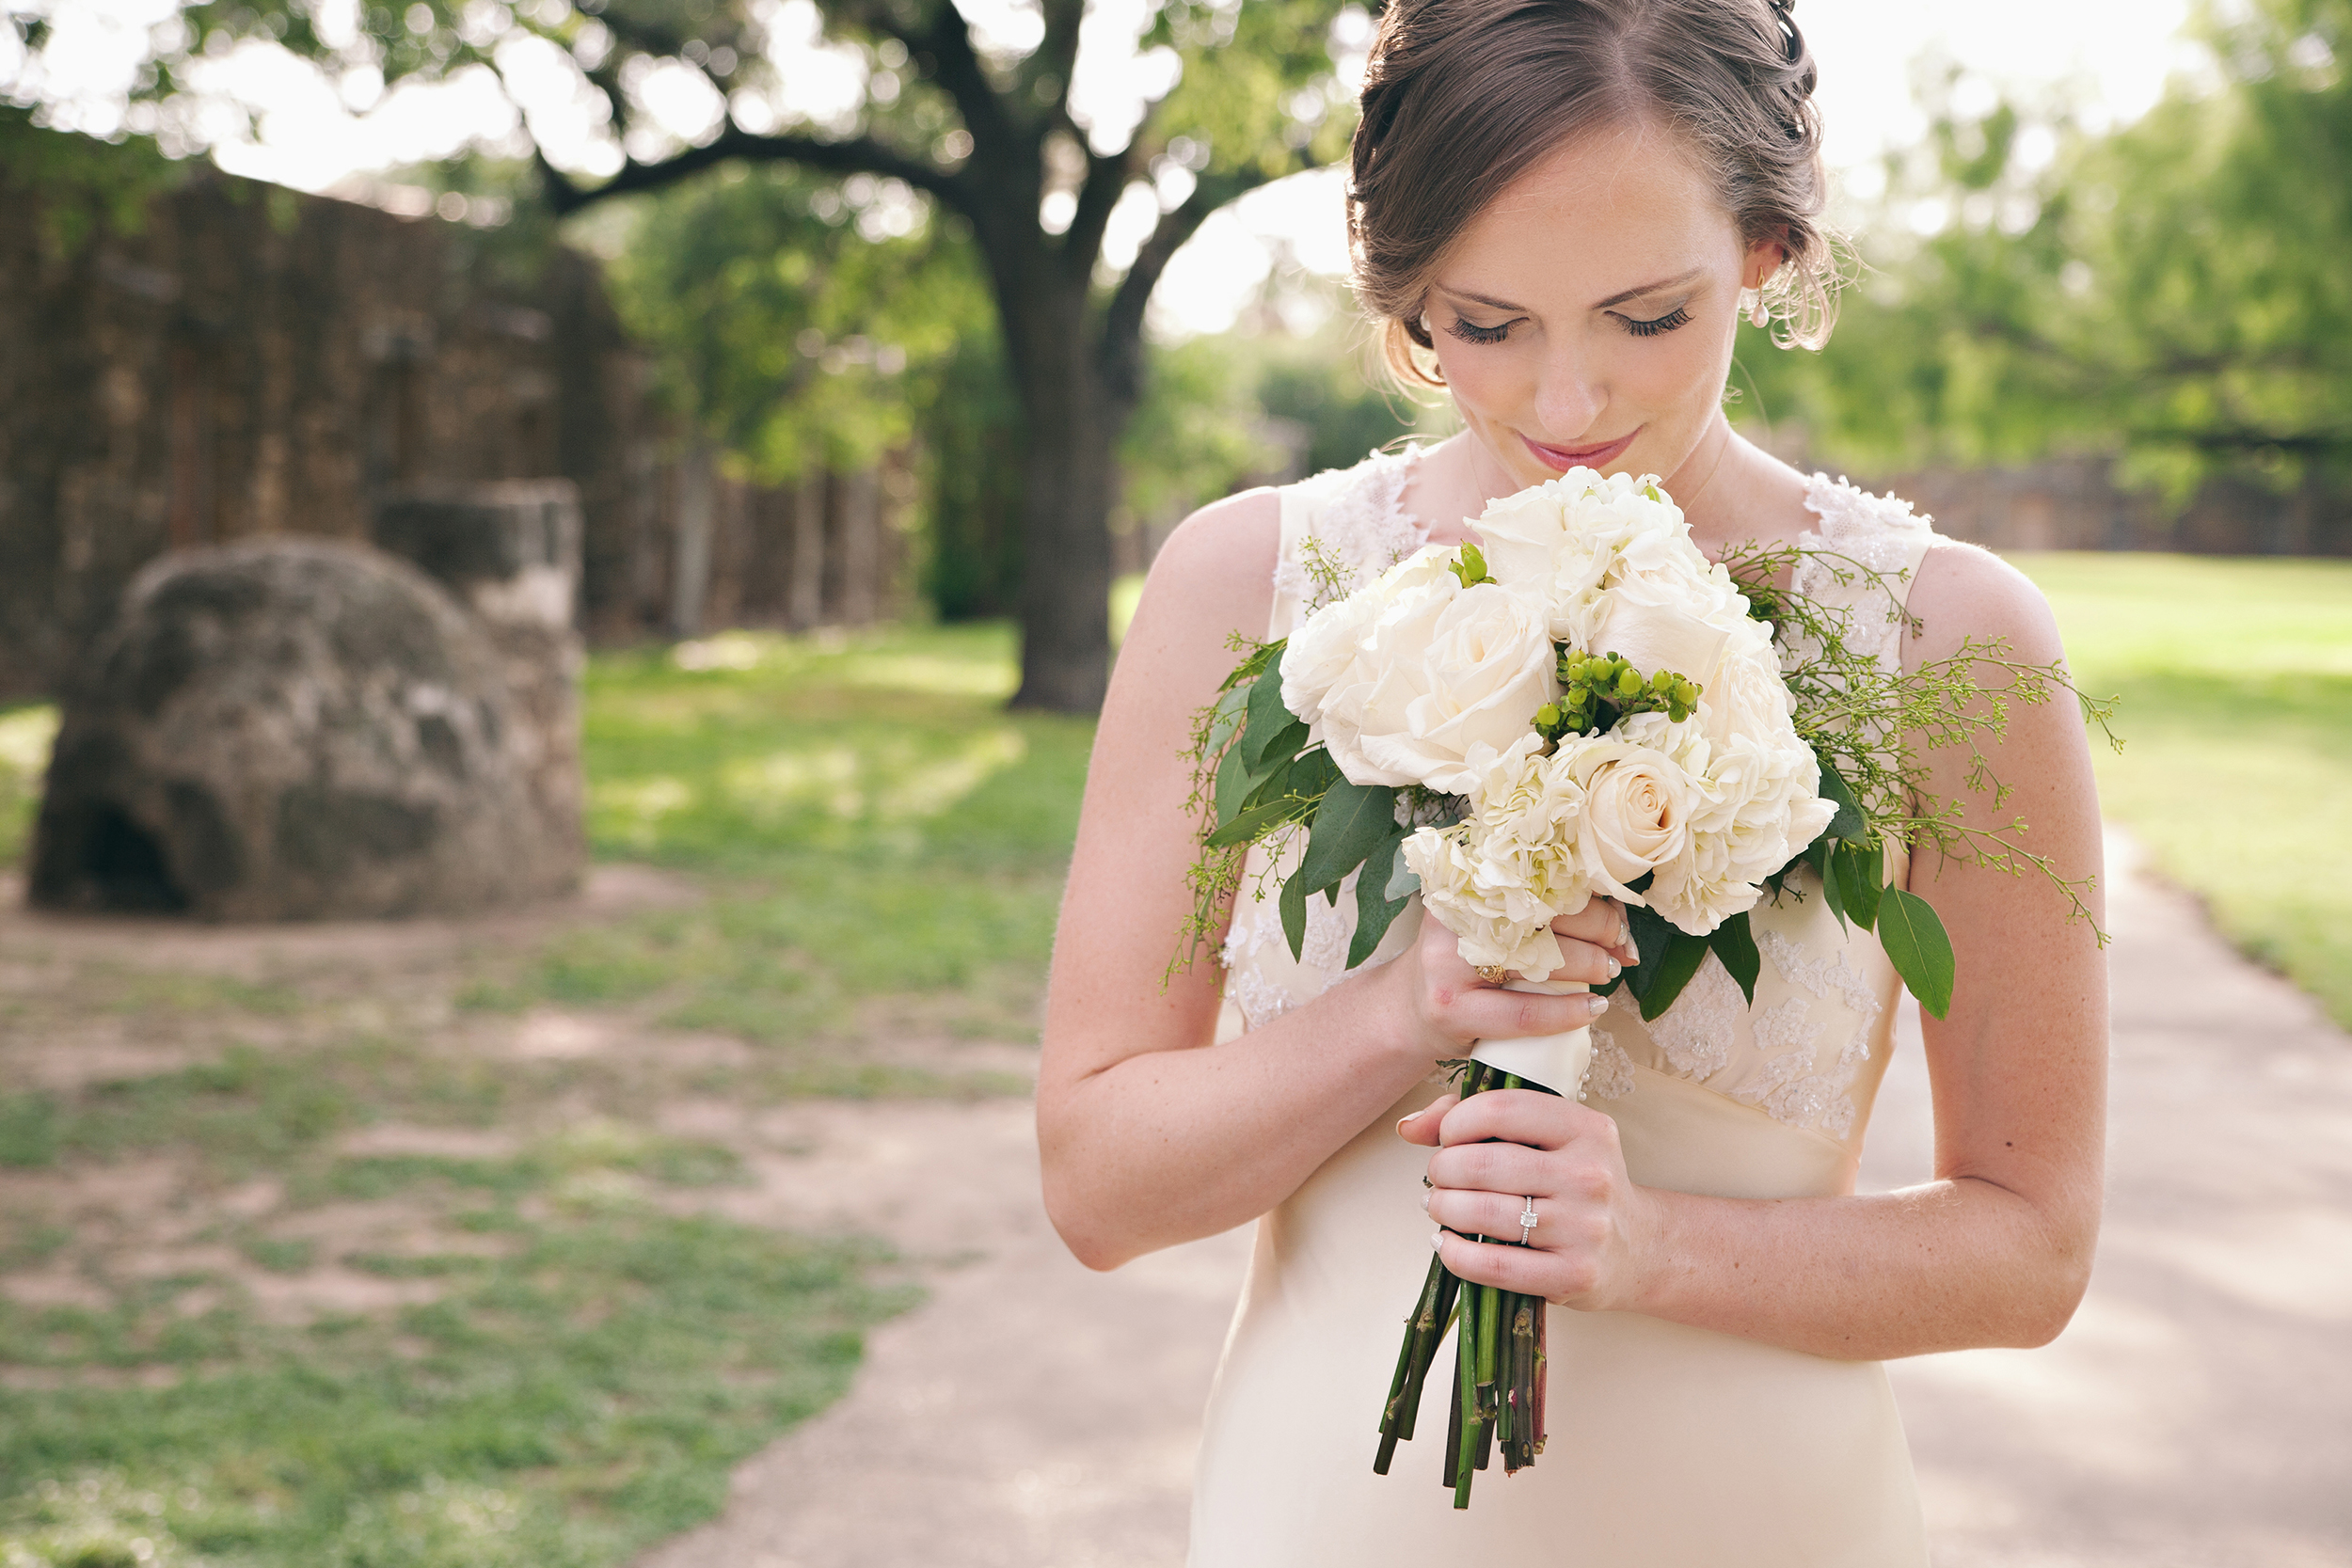 San_Antonio_Wedding_Photography_Bridals04.jpg